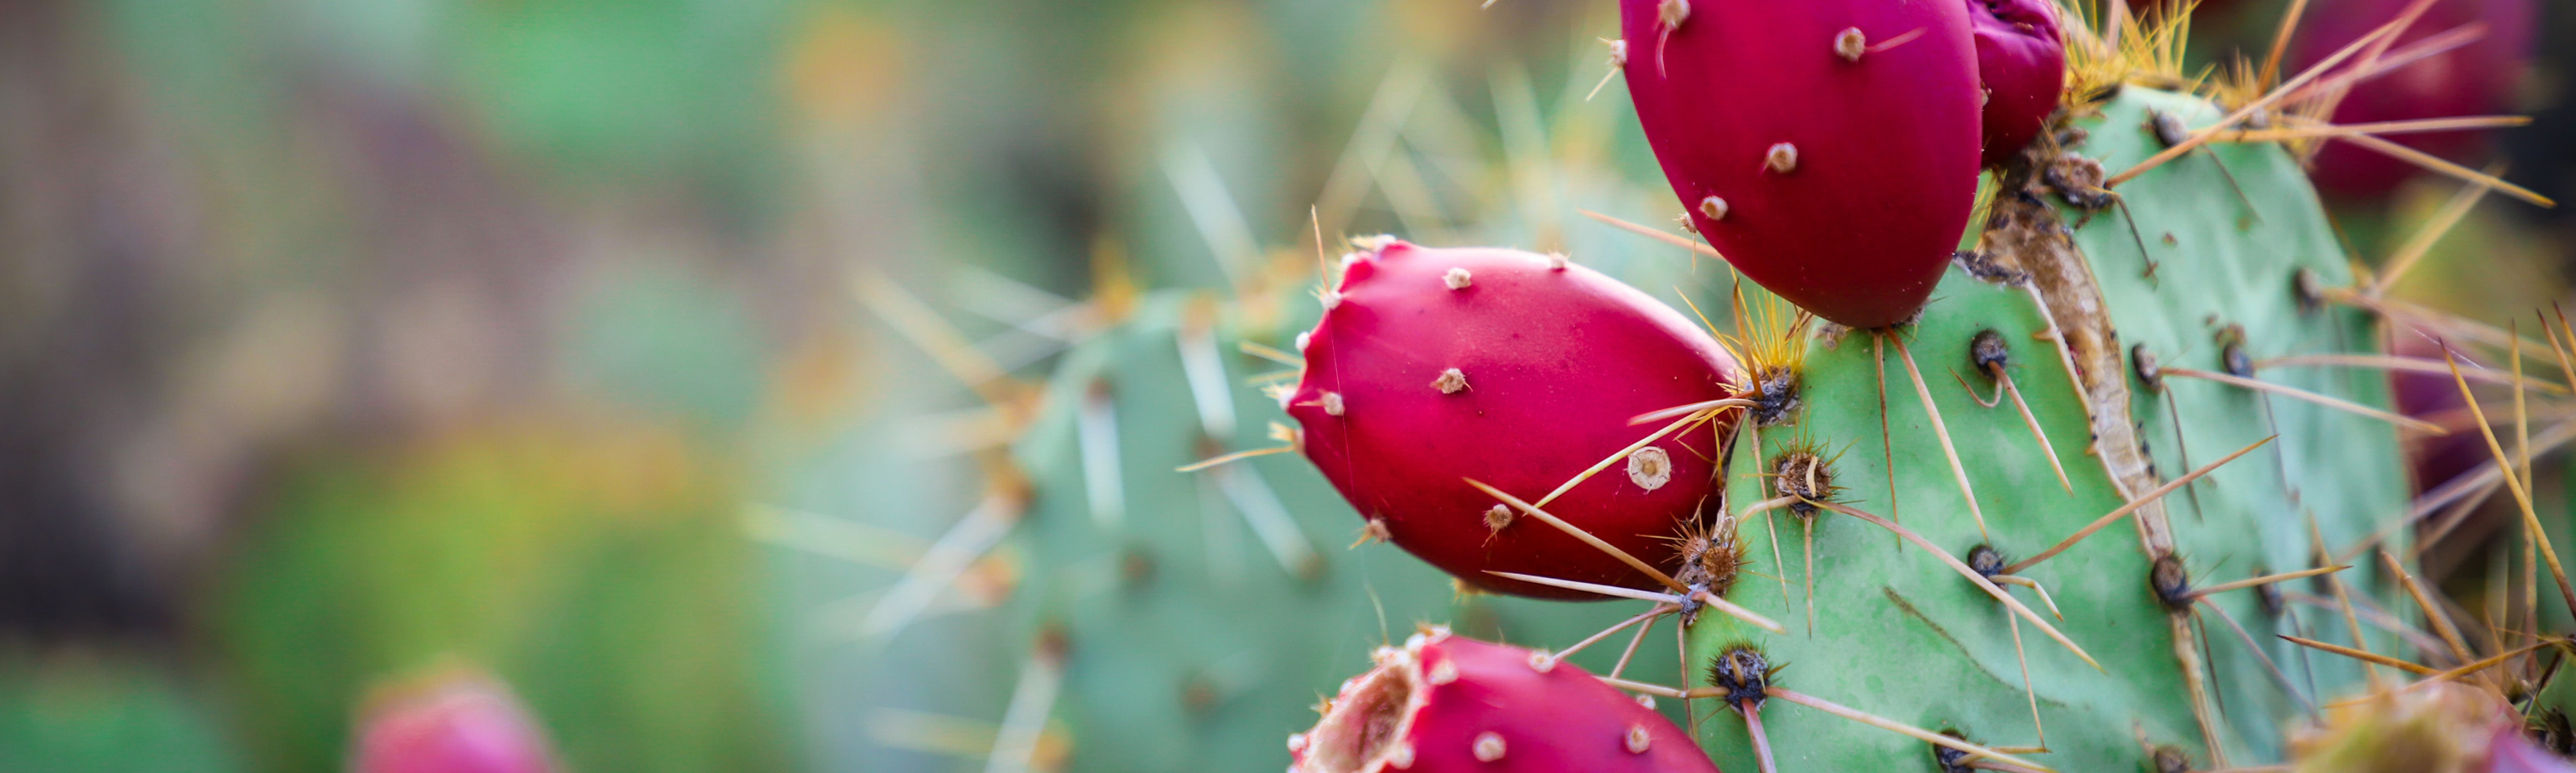 Photograph of a prickly pear cactus, whose sharp thorns guard a succulent fruit.